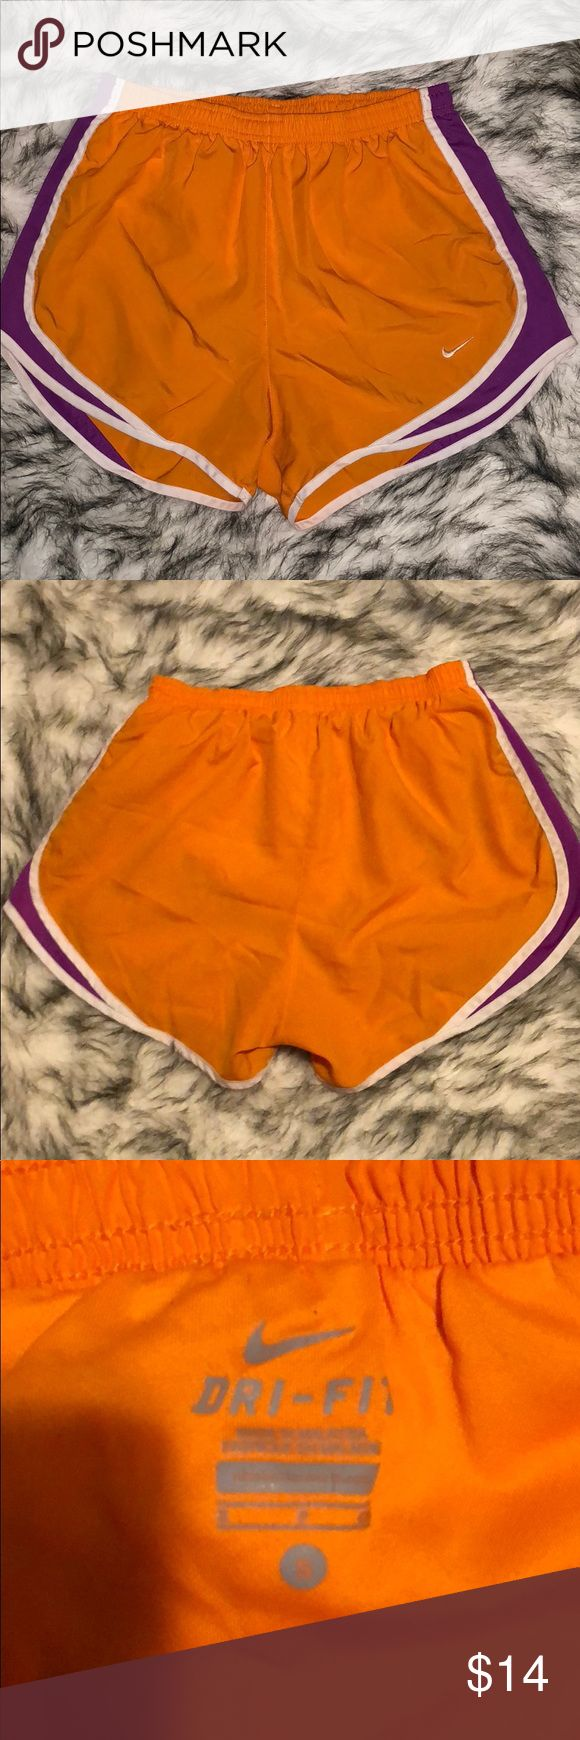 Woman's Orange Nike DRI-FIT Shorts Size Small These Nike shorts do have the attached brief. They are orange with purple and white accent colors. Looks great, just some normal wear and tear Nike Shorts